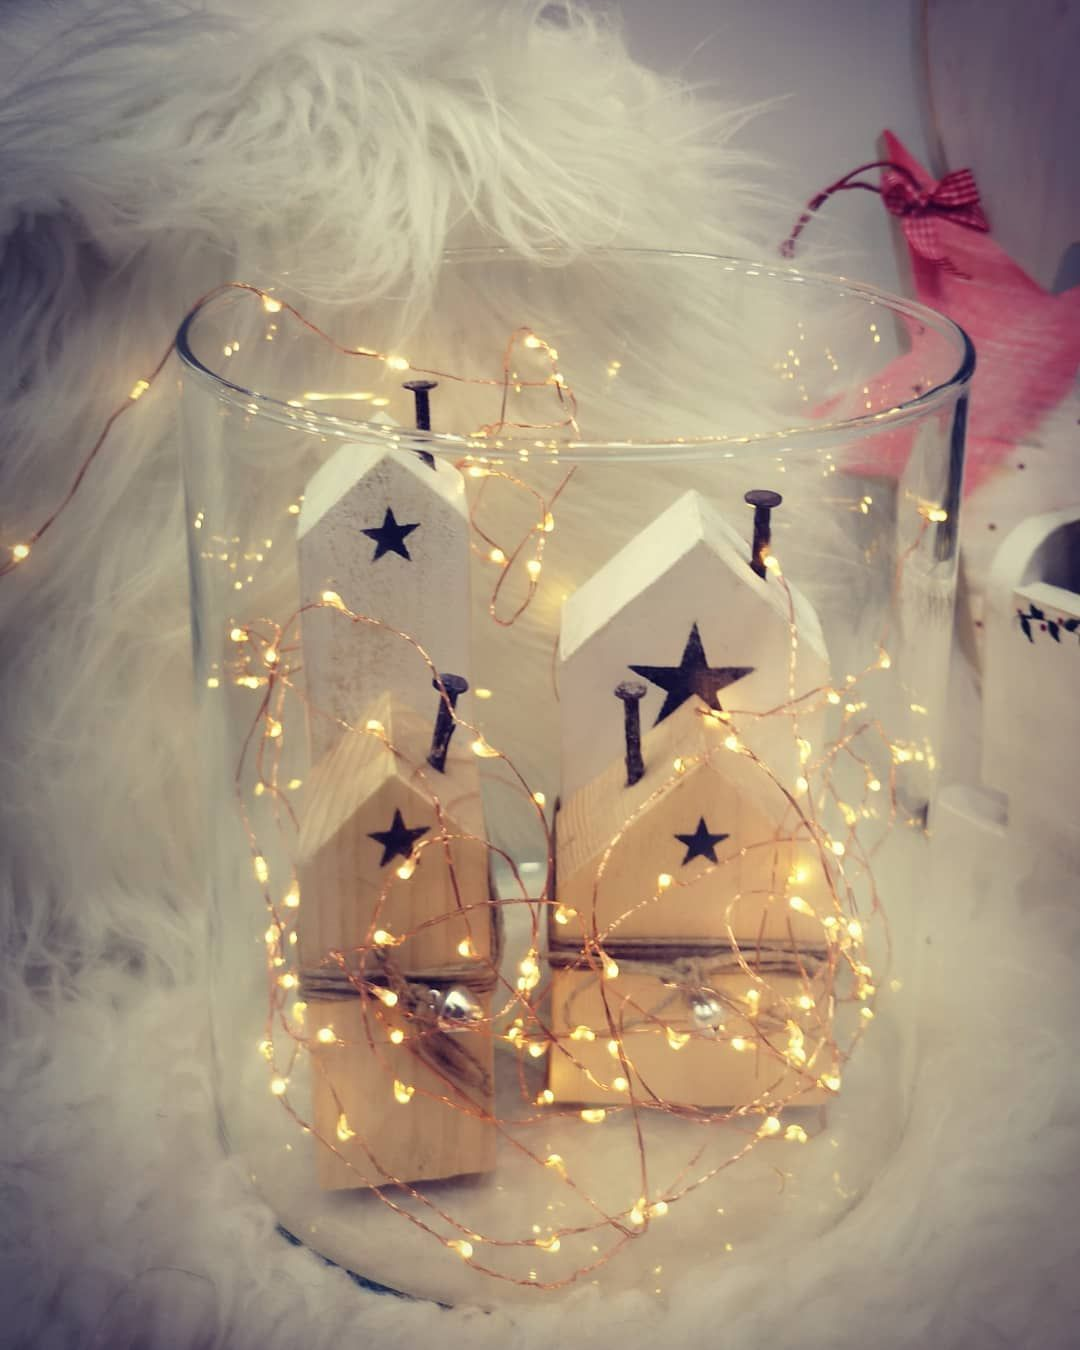 Christmas decorations -      Christmas decorations ✨💛✨💛✨💛 #christmasdecor #christmas #christmastime #christmasmagic #christmastree #christmaslights #seasonaldecor #instachristmas #wooddecorations #wood#pallet #handmade #reciclyng #artists#xmas #xmastime #xmastree #xmasdecor #joy#santa #hohoho #starts #navidad #rustico #madera #pale#reciclar #christmaslovers.     The Effective Pictures We Offer You About Wood Decor bathroom      A quality picture can tell you many things. You can find the most